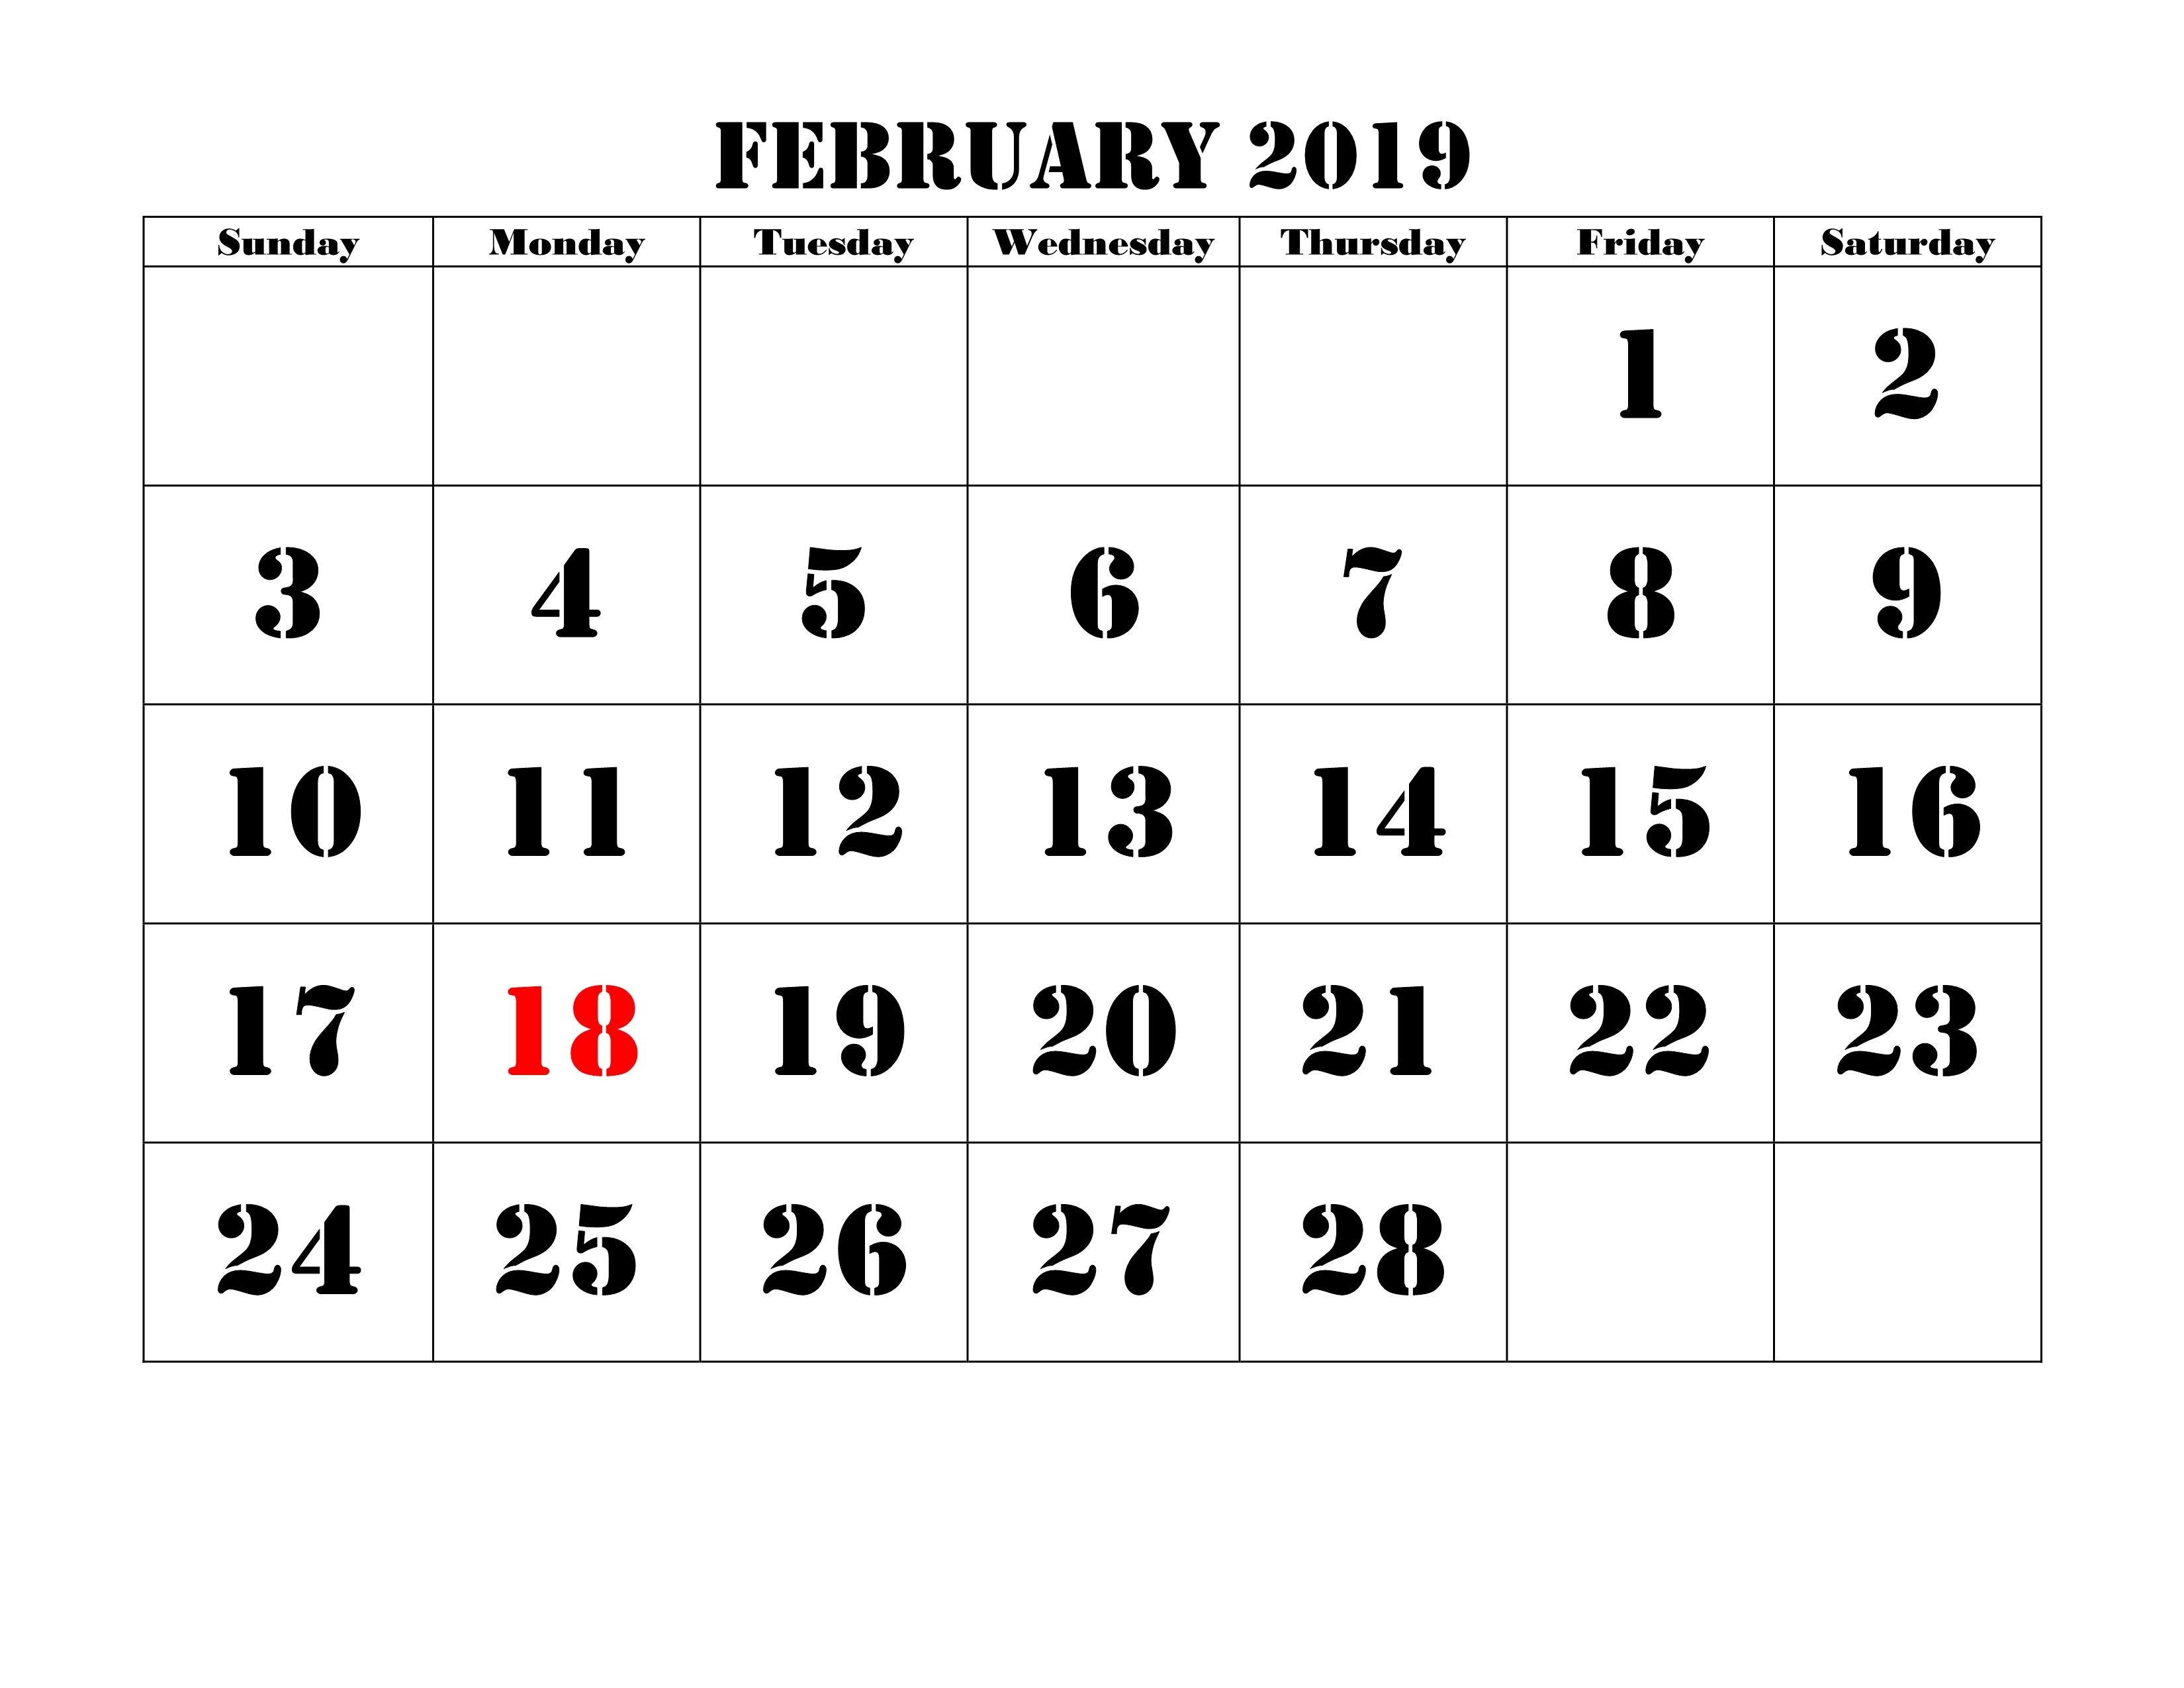 Today Is Rosa Parks Day It S An American Holiday In Honor Of The Civil Rights Leader Rosa Parks In The U S S Free Printable Calendar Templates Calendar February Calendar